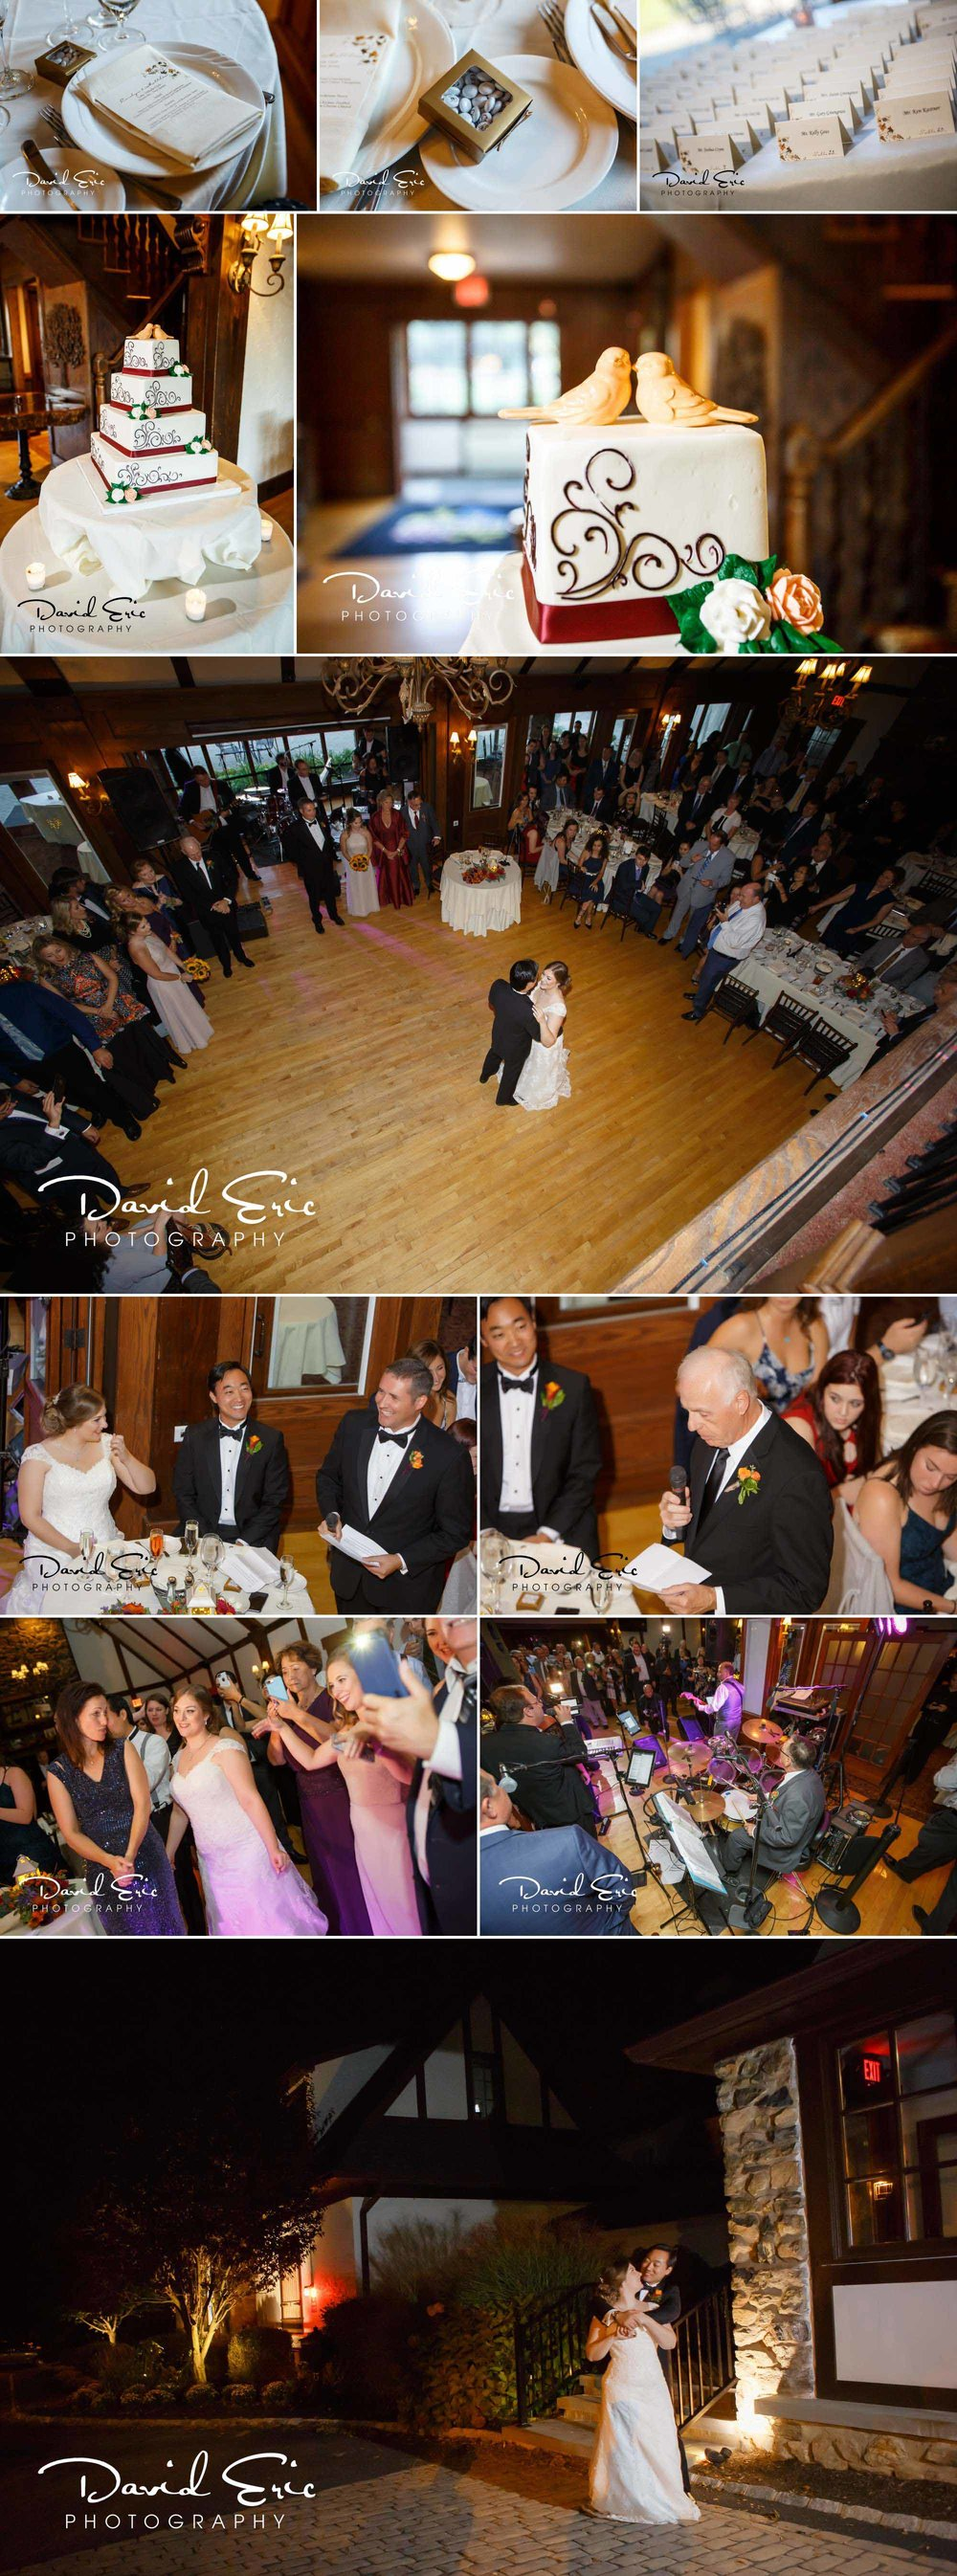 Lake Valhalla Club wedding reception photos